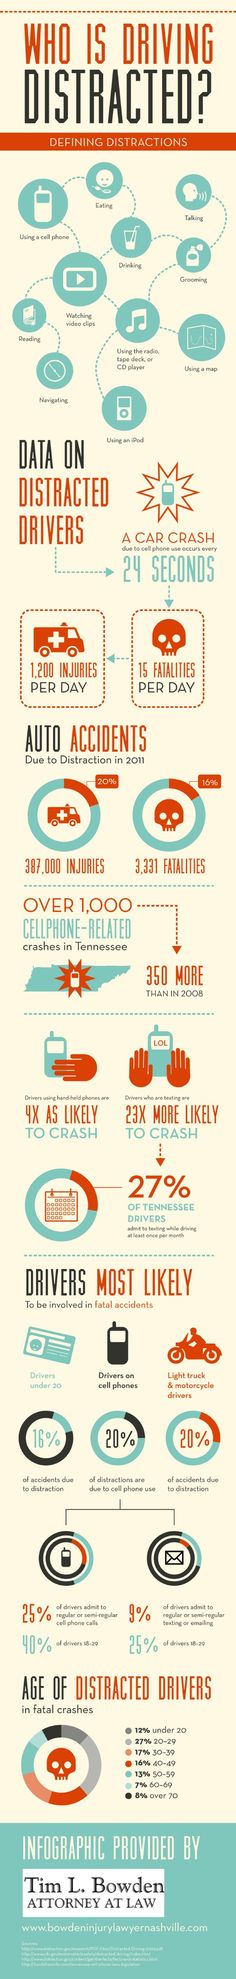 In car accidents involving drivers under the age of 20, 16% are due to distracted driving behavior. This auto accident infographic from a personal injury lawyer in Nashville outlines some important information about distracted driving. Source: http://www.bowdeninjurylawyernashville.com/673921/2013/04/01/who-is-driving-distracted-infographic.html